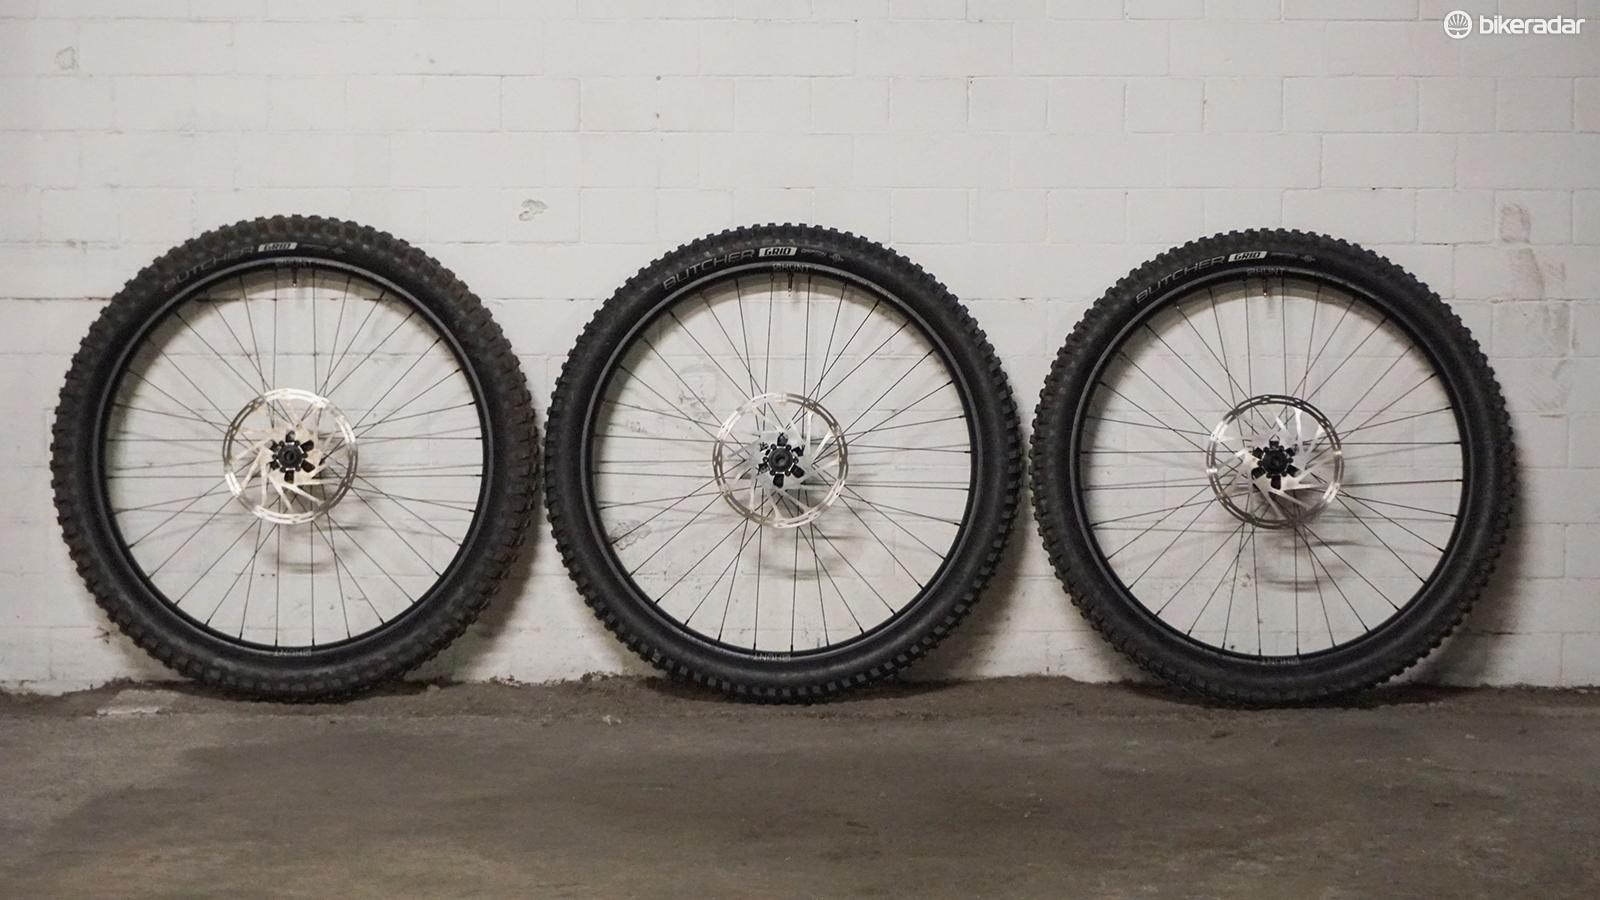 Hunt sponsored this test and provided three sets of their Endurowide wheelset so tyres could be quickly swapped when testing